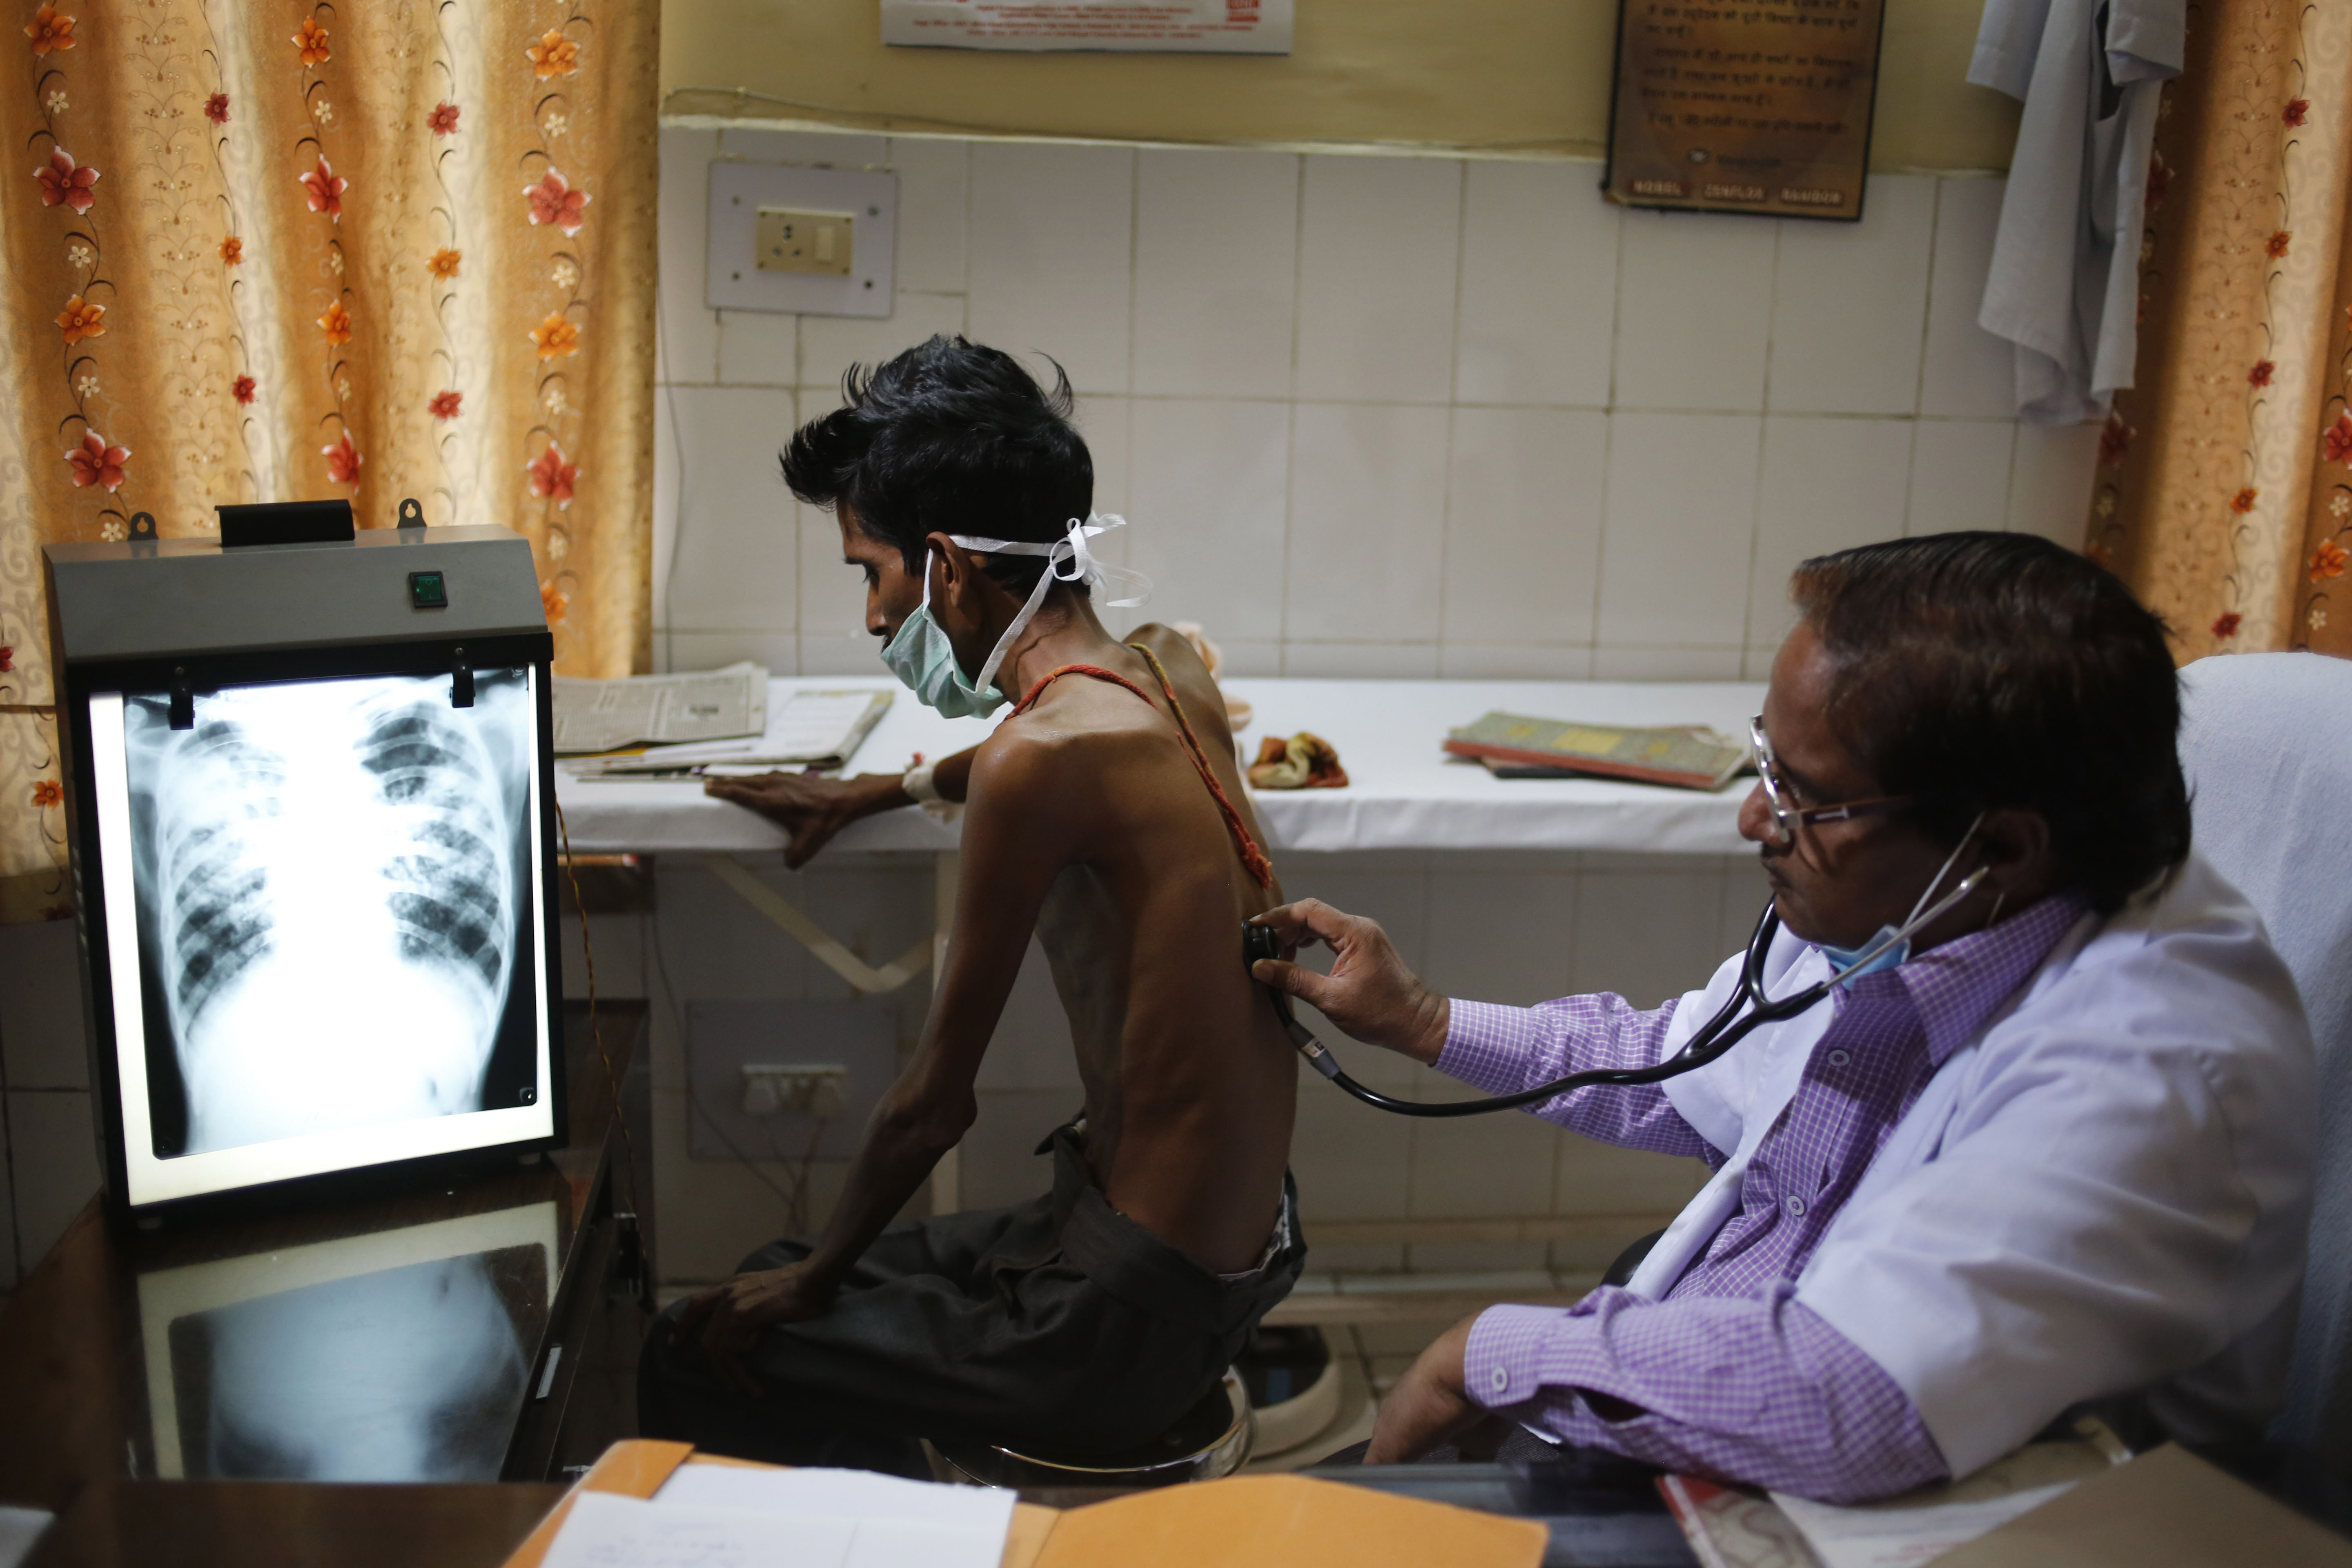 An Indian doctor examines a tuberculosis patient in a government TB hospital on World Tuberculosis Day in Allahabad, India, Monday, March 24, 2014. India has the highest incidence of TB in the world, according to the World Health Organization's Global Tuberculosis Report 2013, with as many as 2.4 million cases. India saw the greatest increase in multidrug-resistant TB between 2011 and 2012. The disease kills about 300,000 people every year in the country. (AP Photo/Rajesh Kumar Singh)